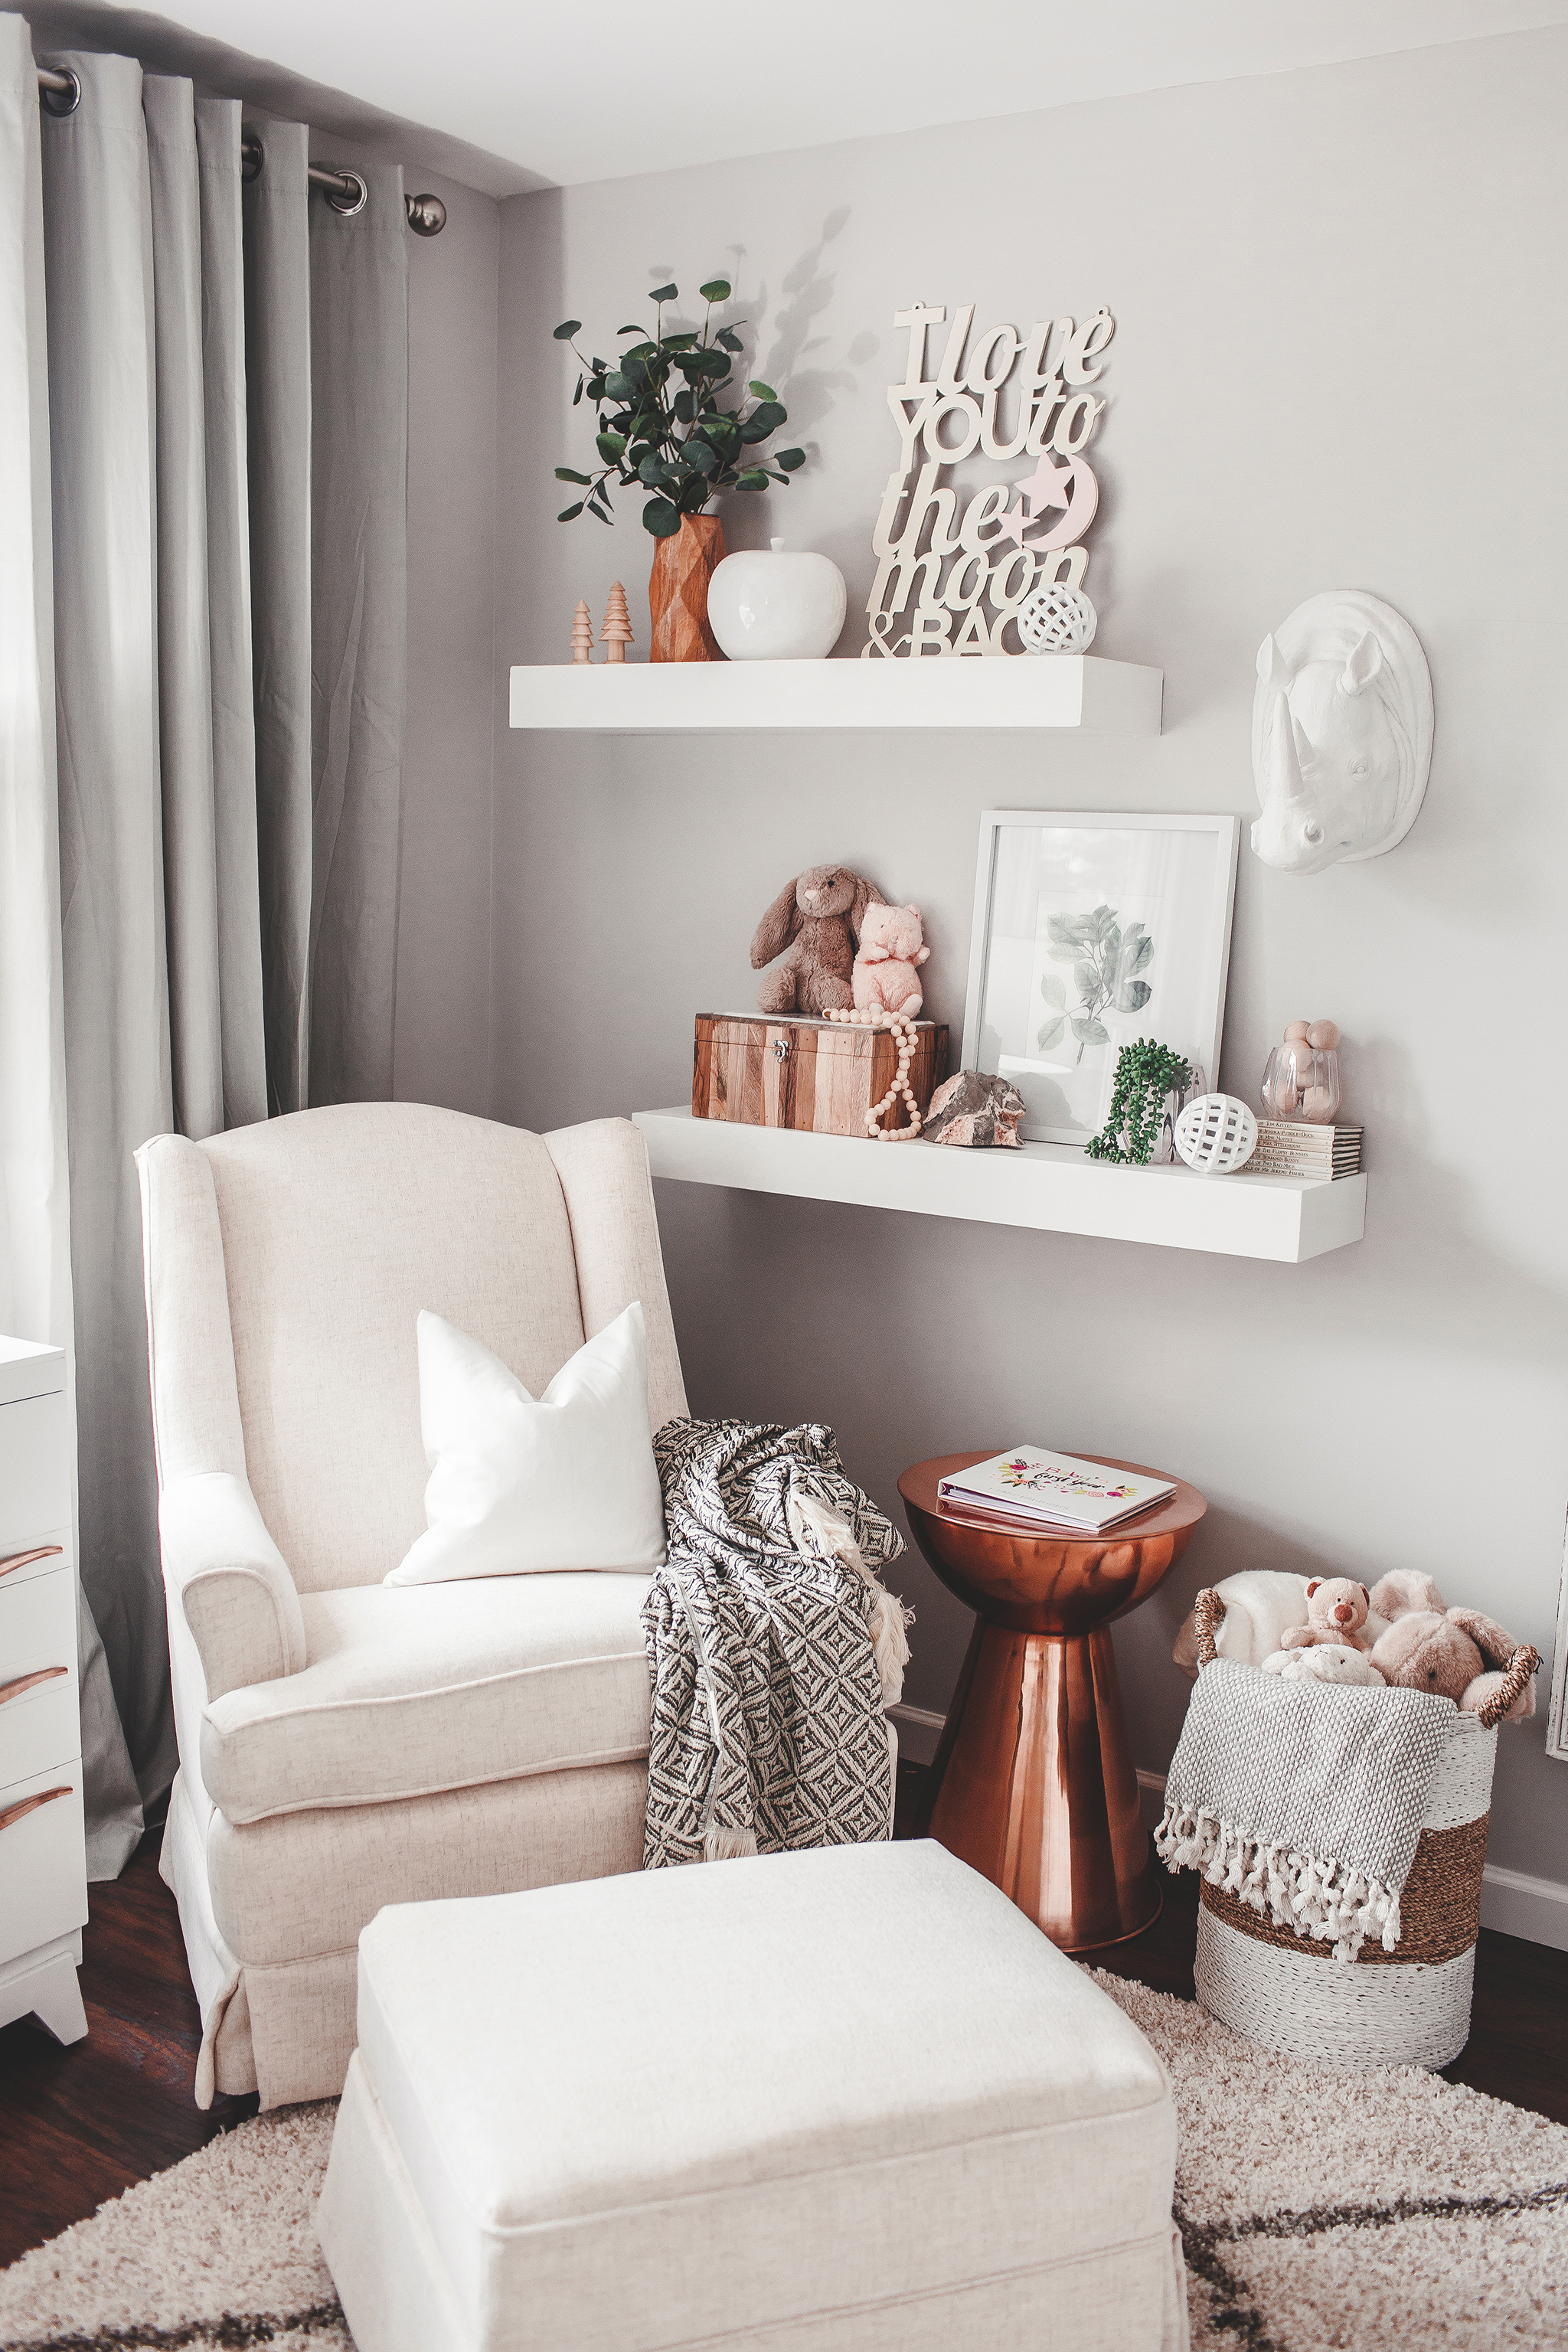 Nursing Nook in Neutral Girl's Nursery with Copper Accents - Project Nursery